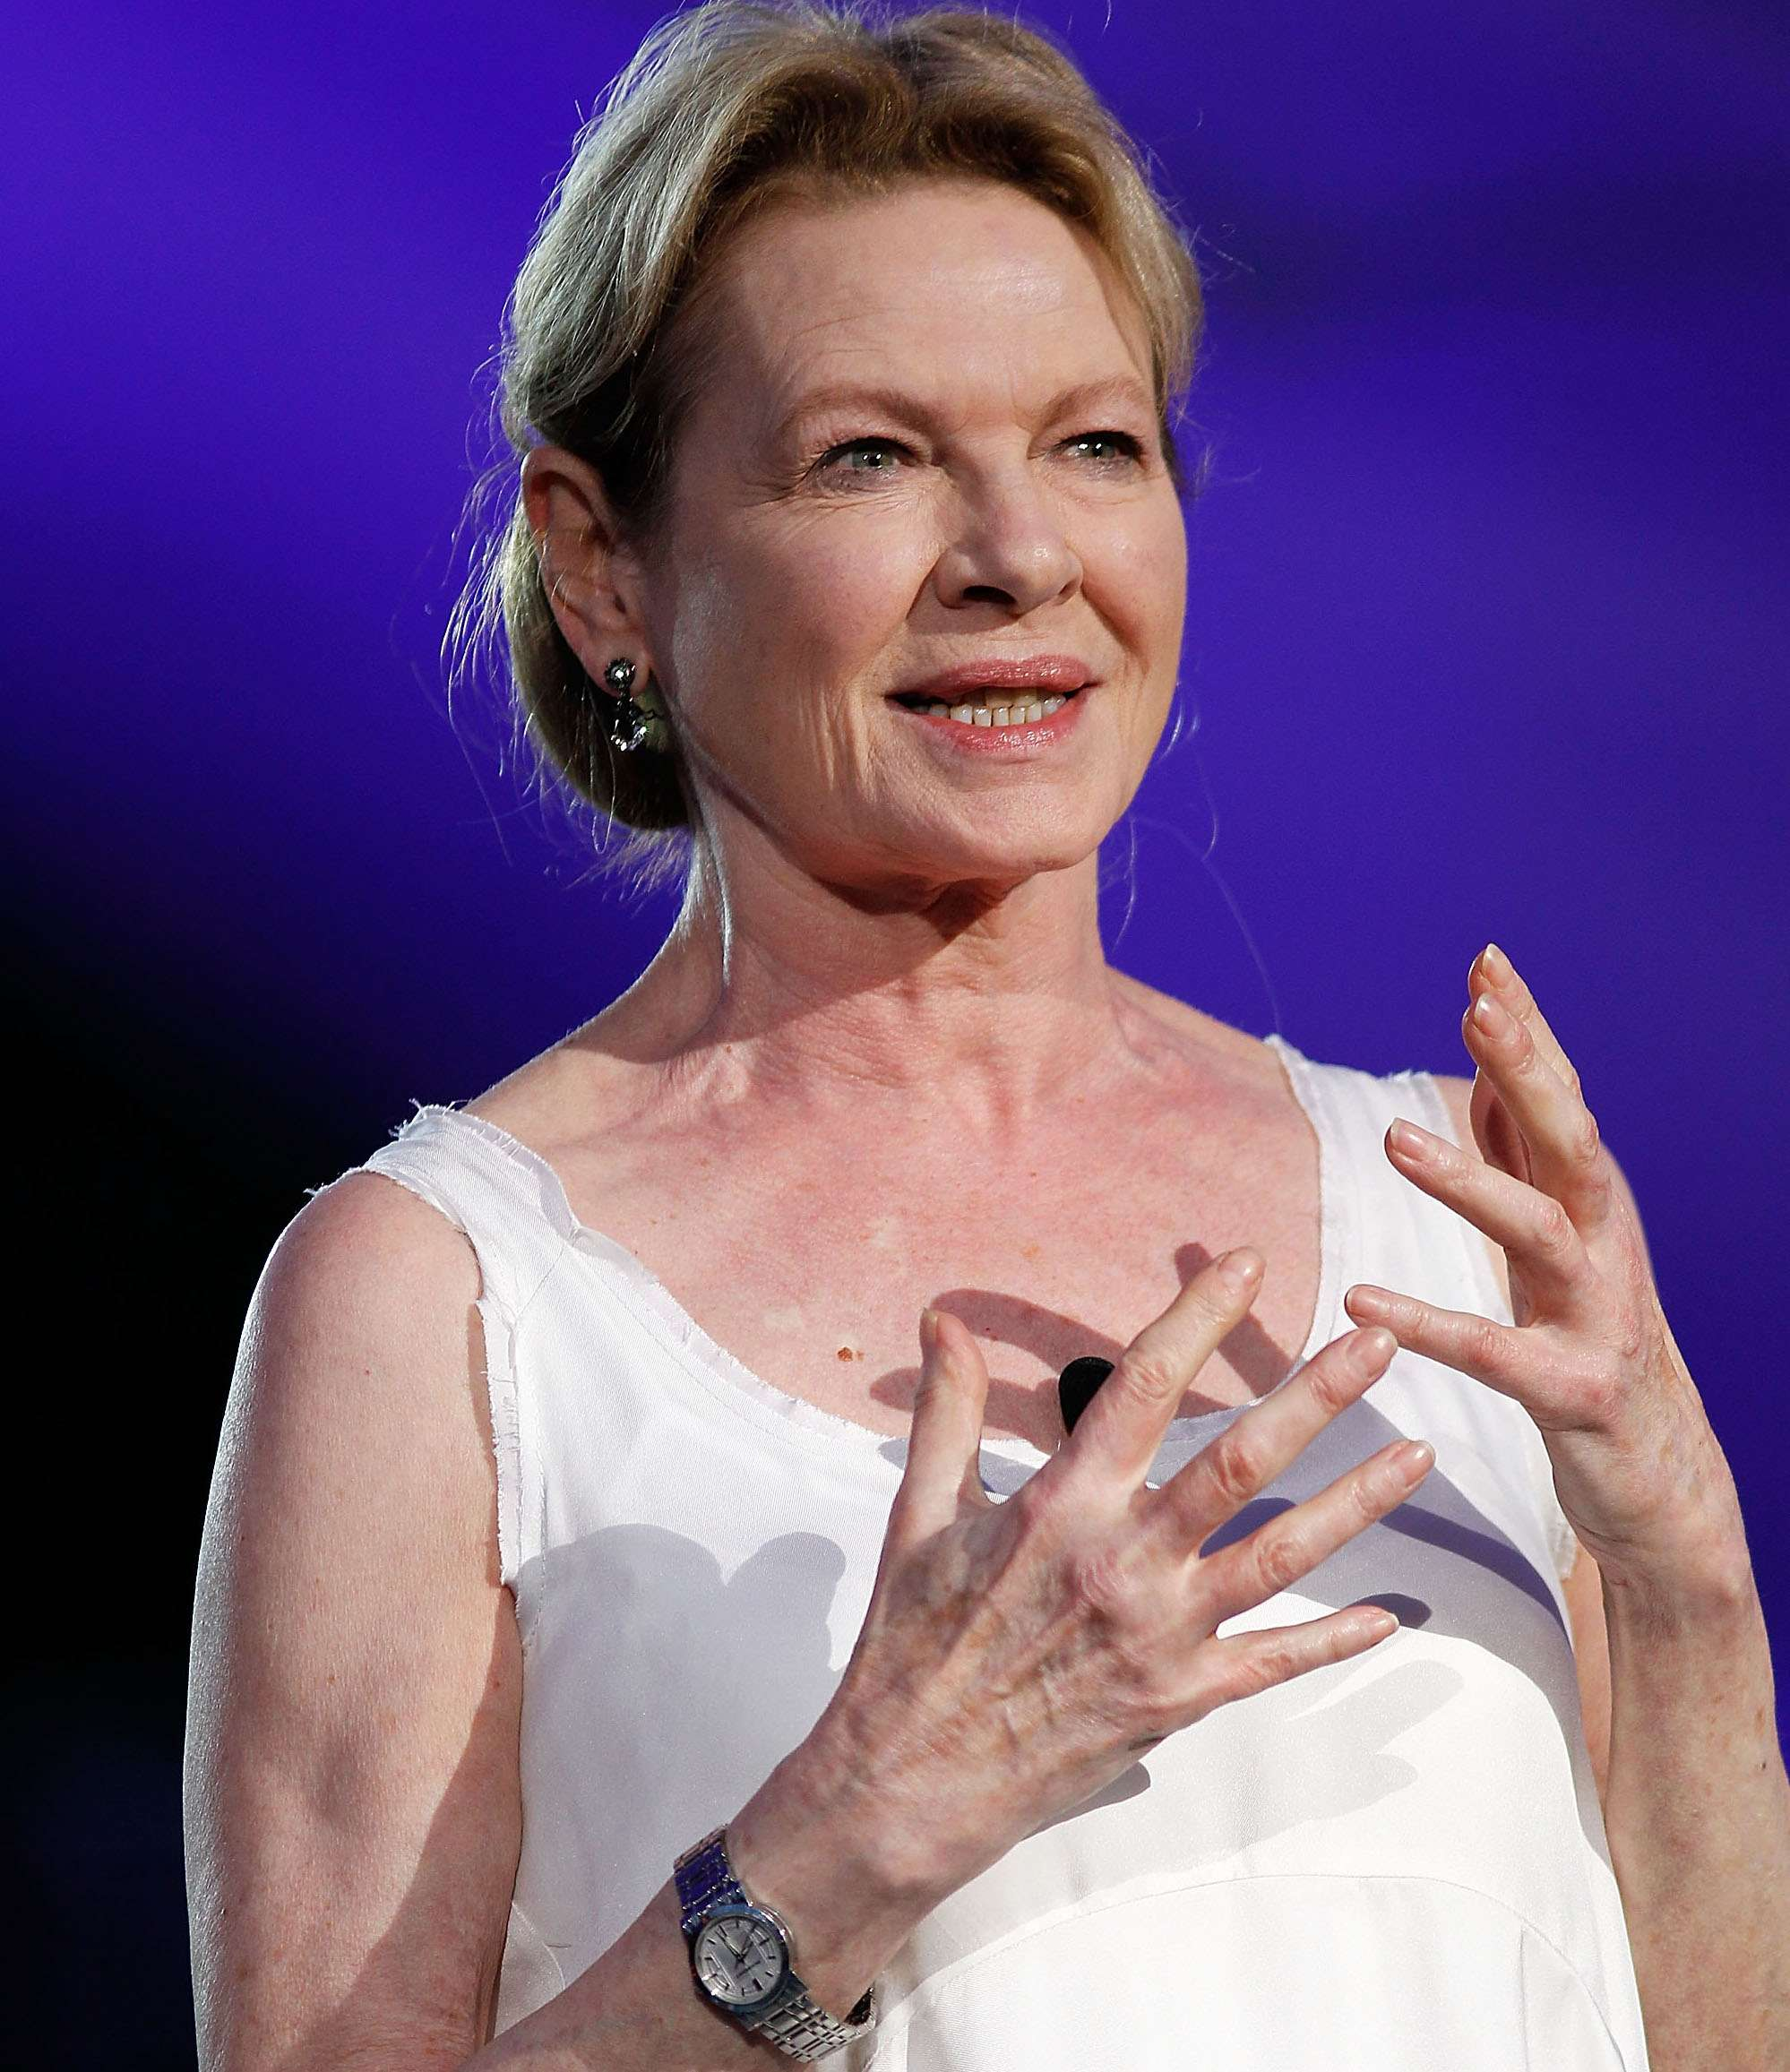 Dianne Wiest ganó el Oscar por 'Hannah and Her Sisters' (1986) y por 'Bullets Over Broadway' (1994). Foto: Getty Images